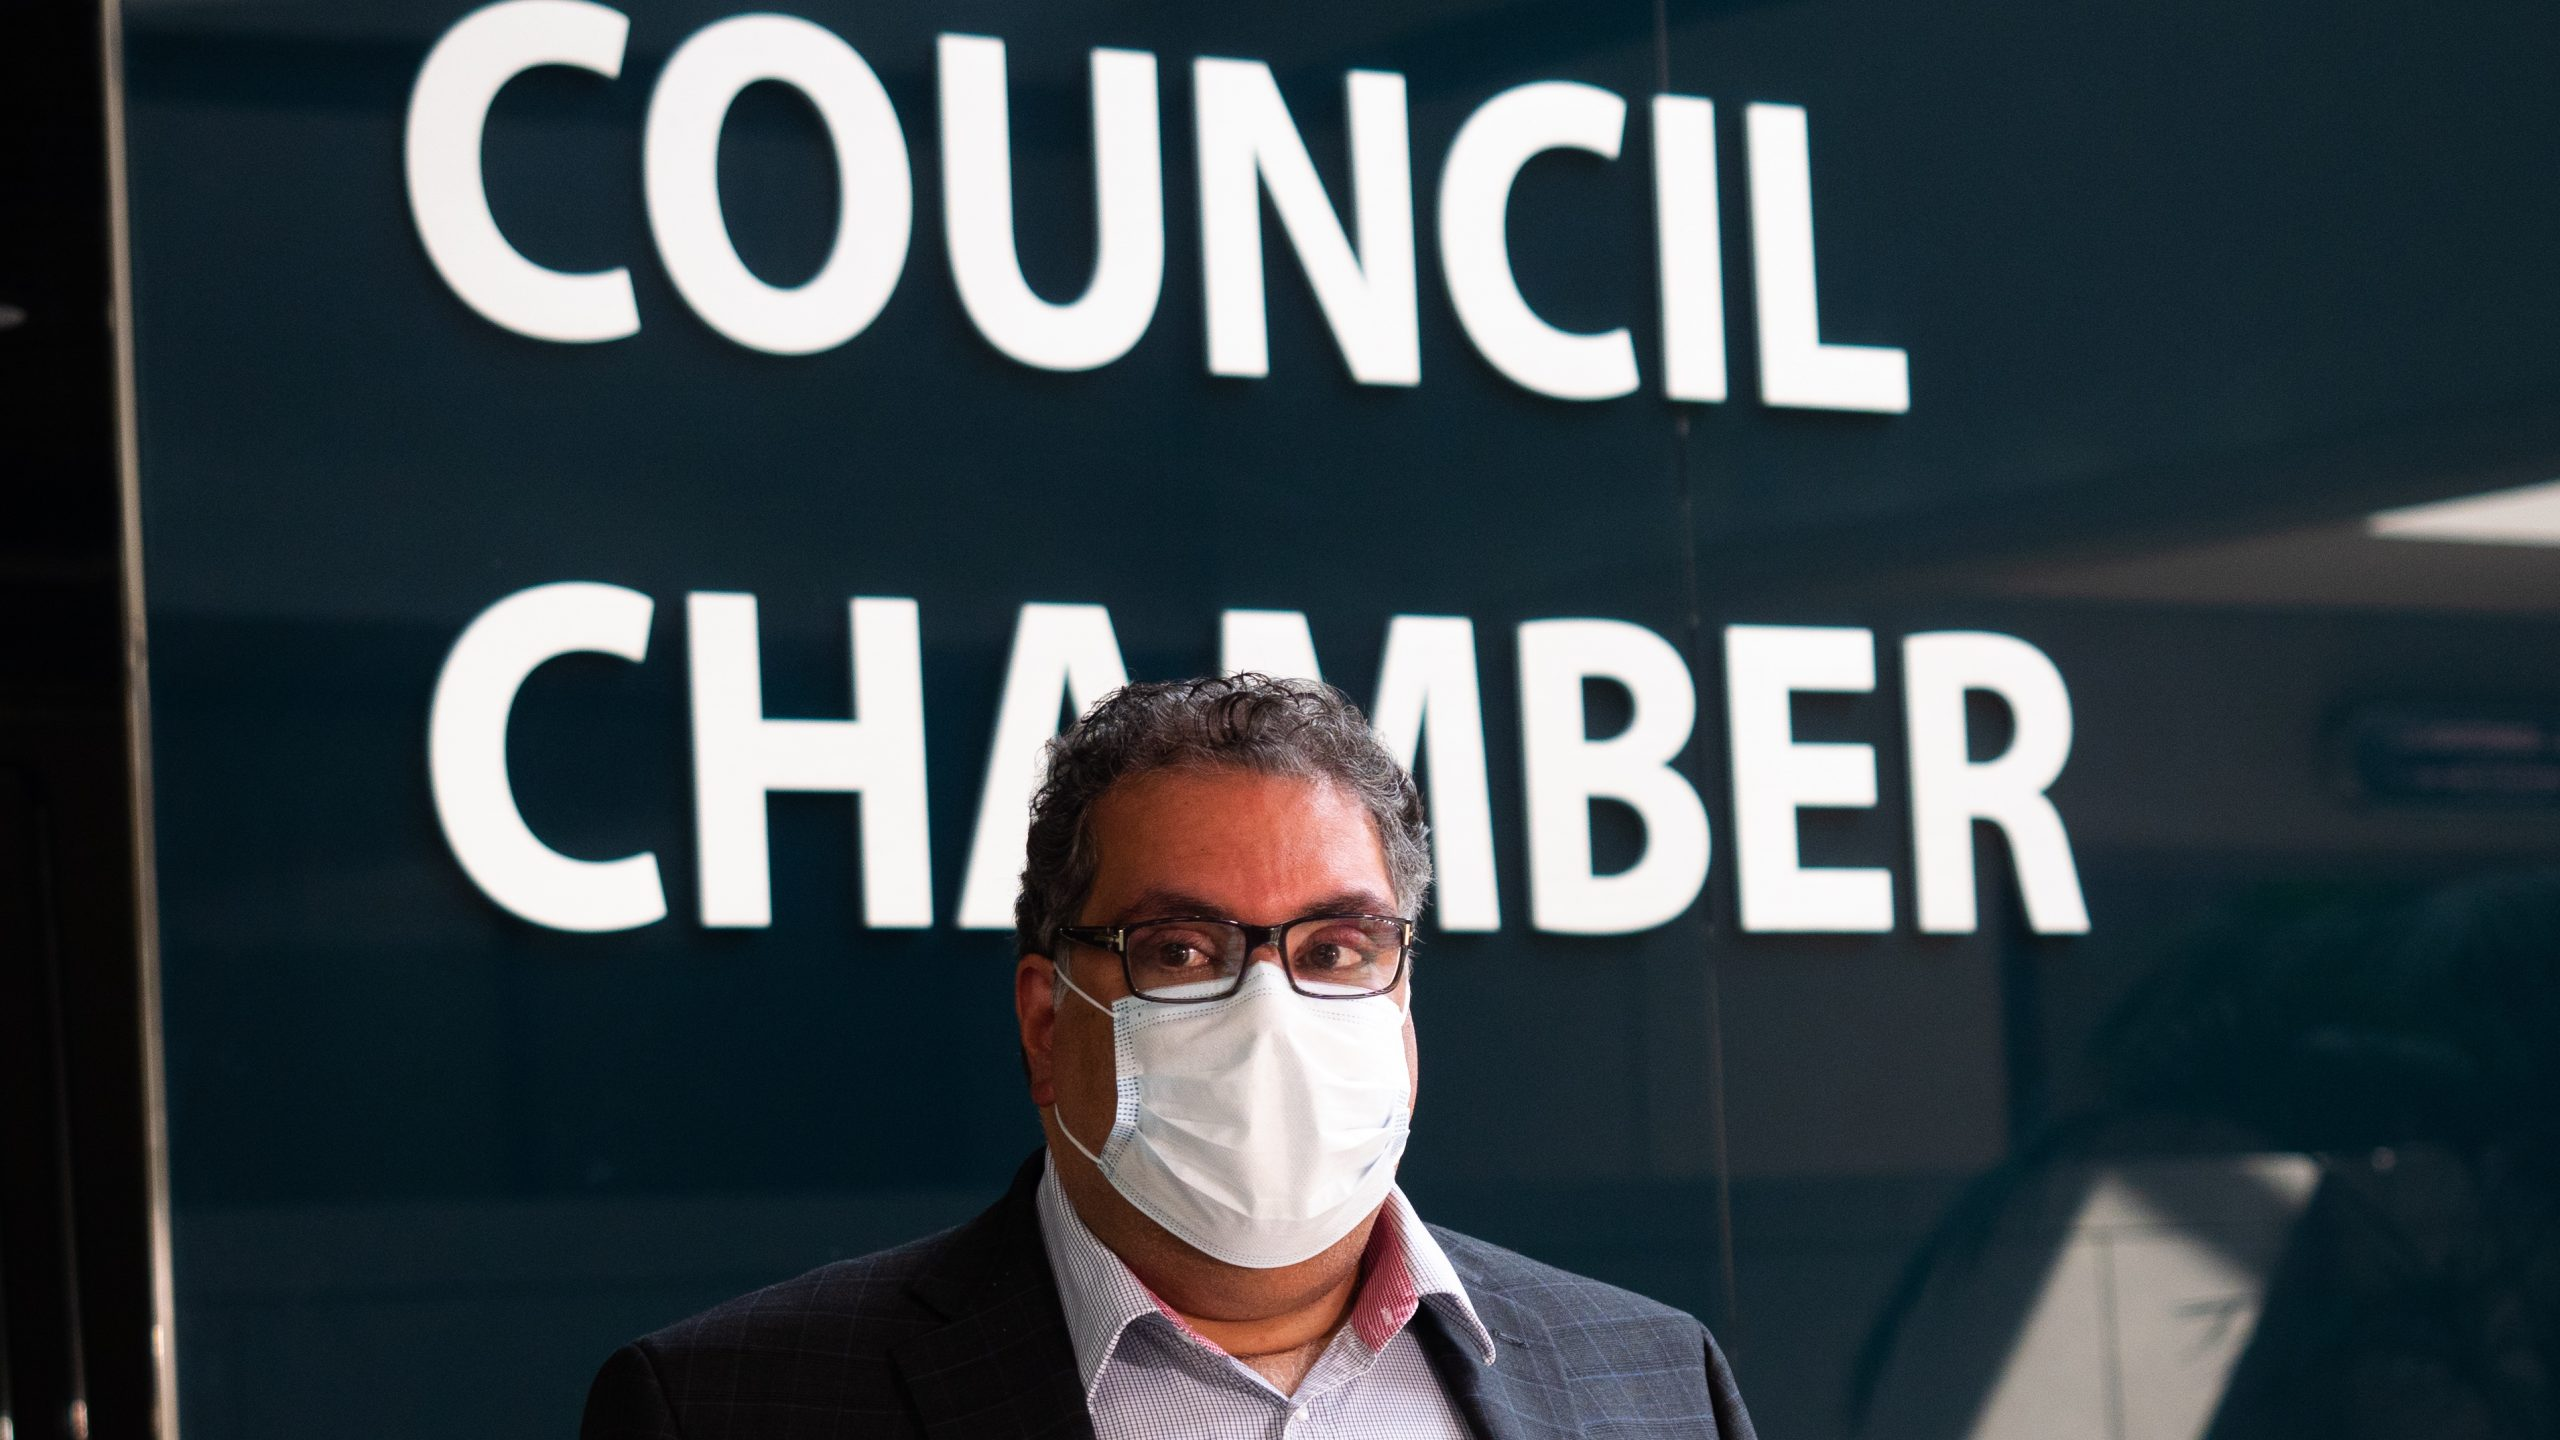 Nenshi's latest power grab over rural communities must be stopped